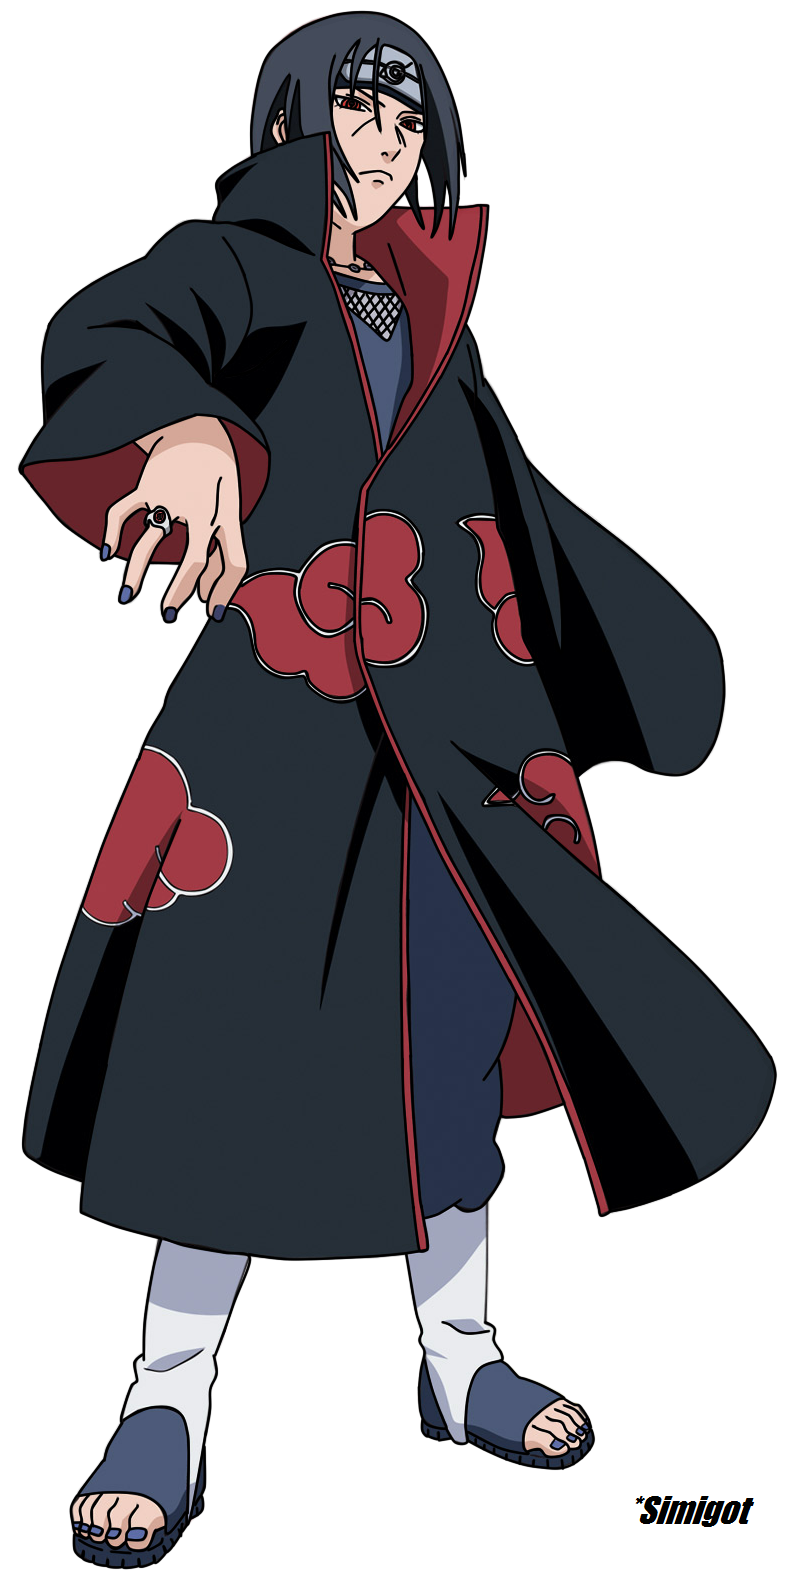 Itachi Uchicha by simigot on DeviantArt